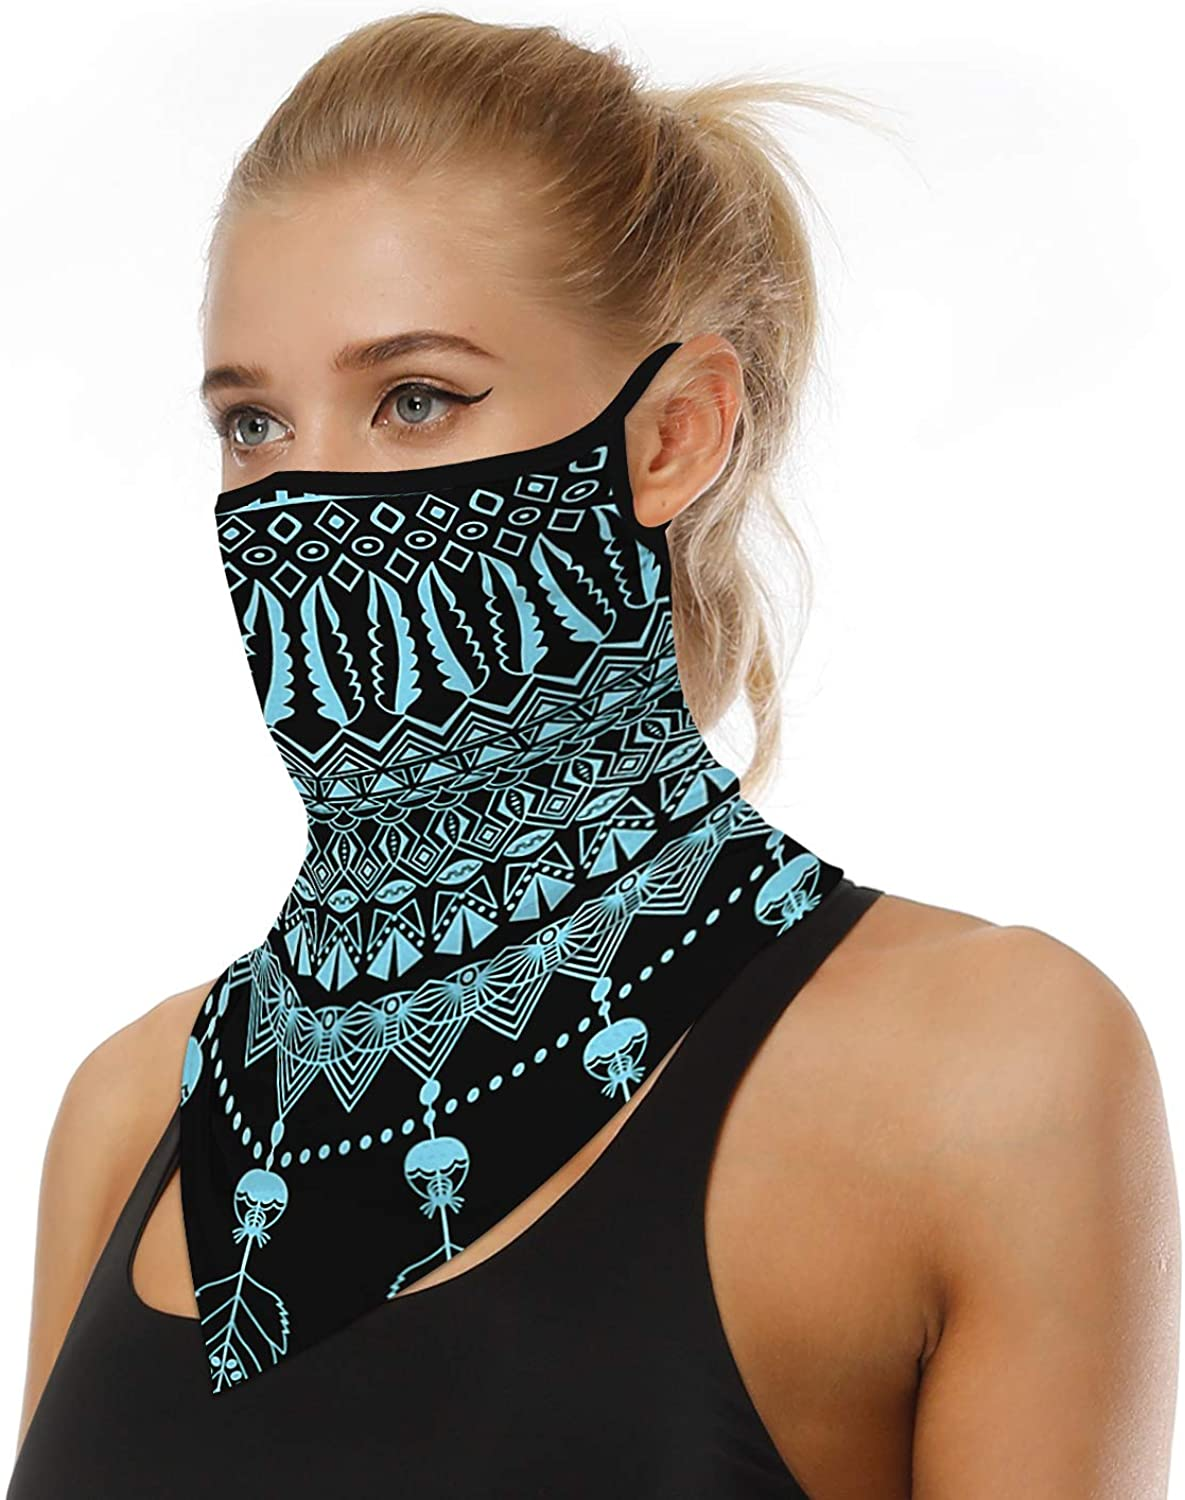 Magic Face Bandana w/Earloops for WomenMen,Breathable Scarf/Wrap for HikingSport